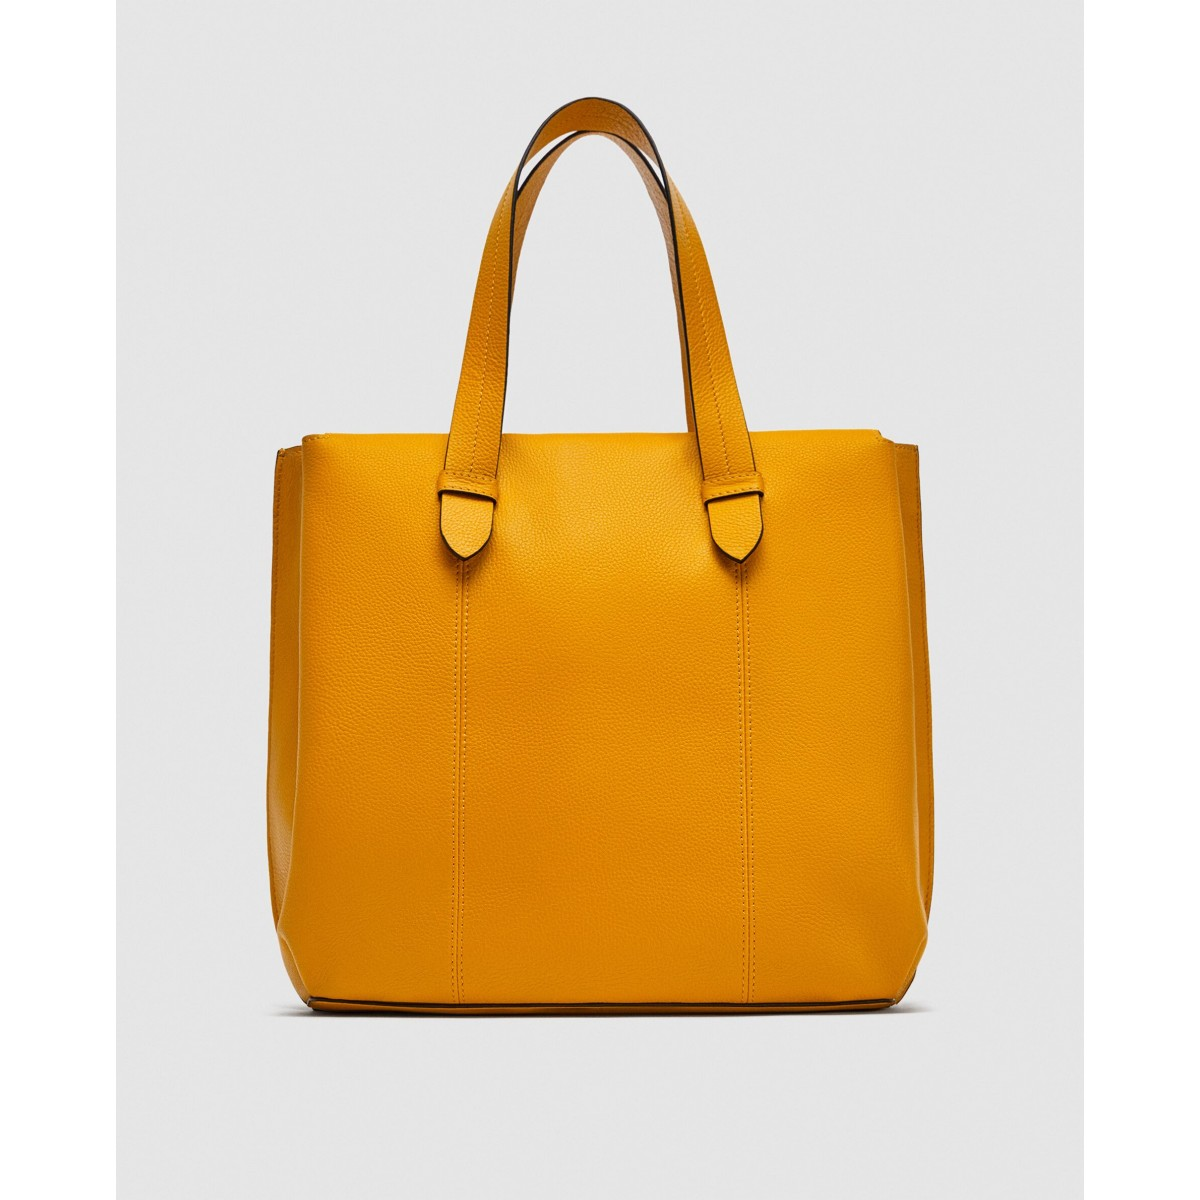 Zara Leather Tote